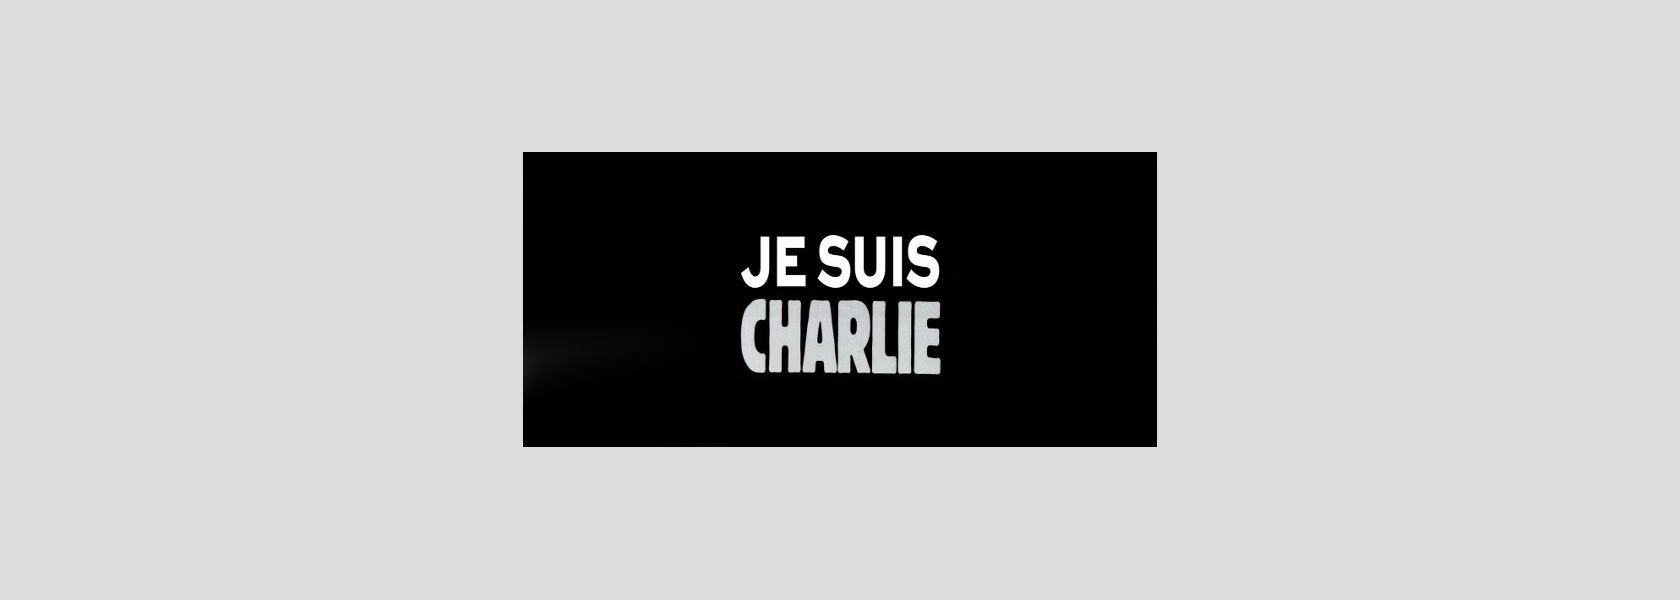 Condemnation Of The Attack And Unconditional Support To Charlie Hebdo